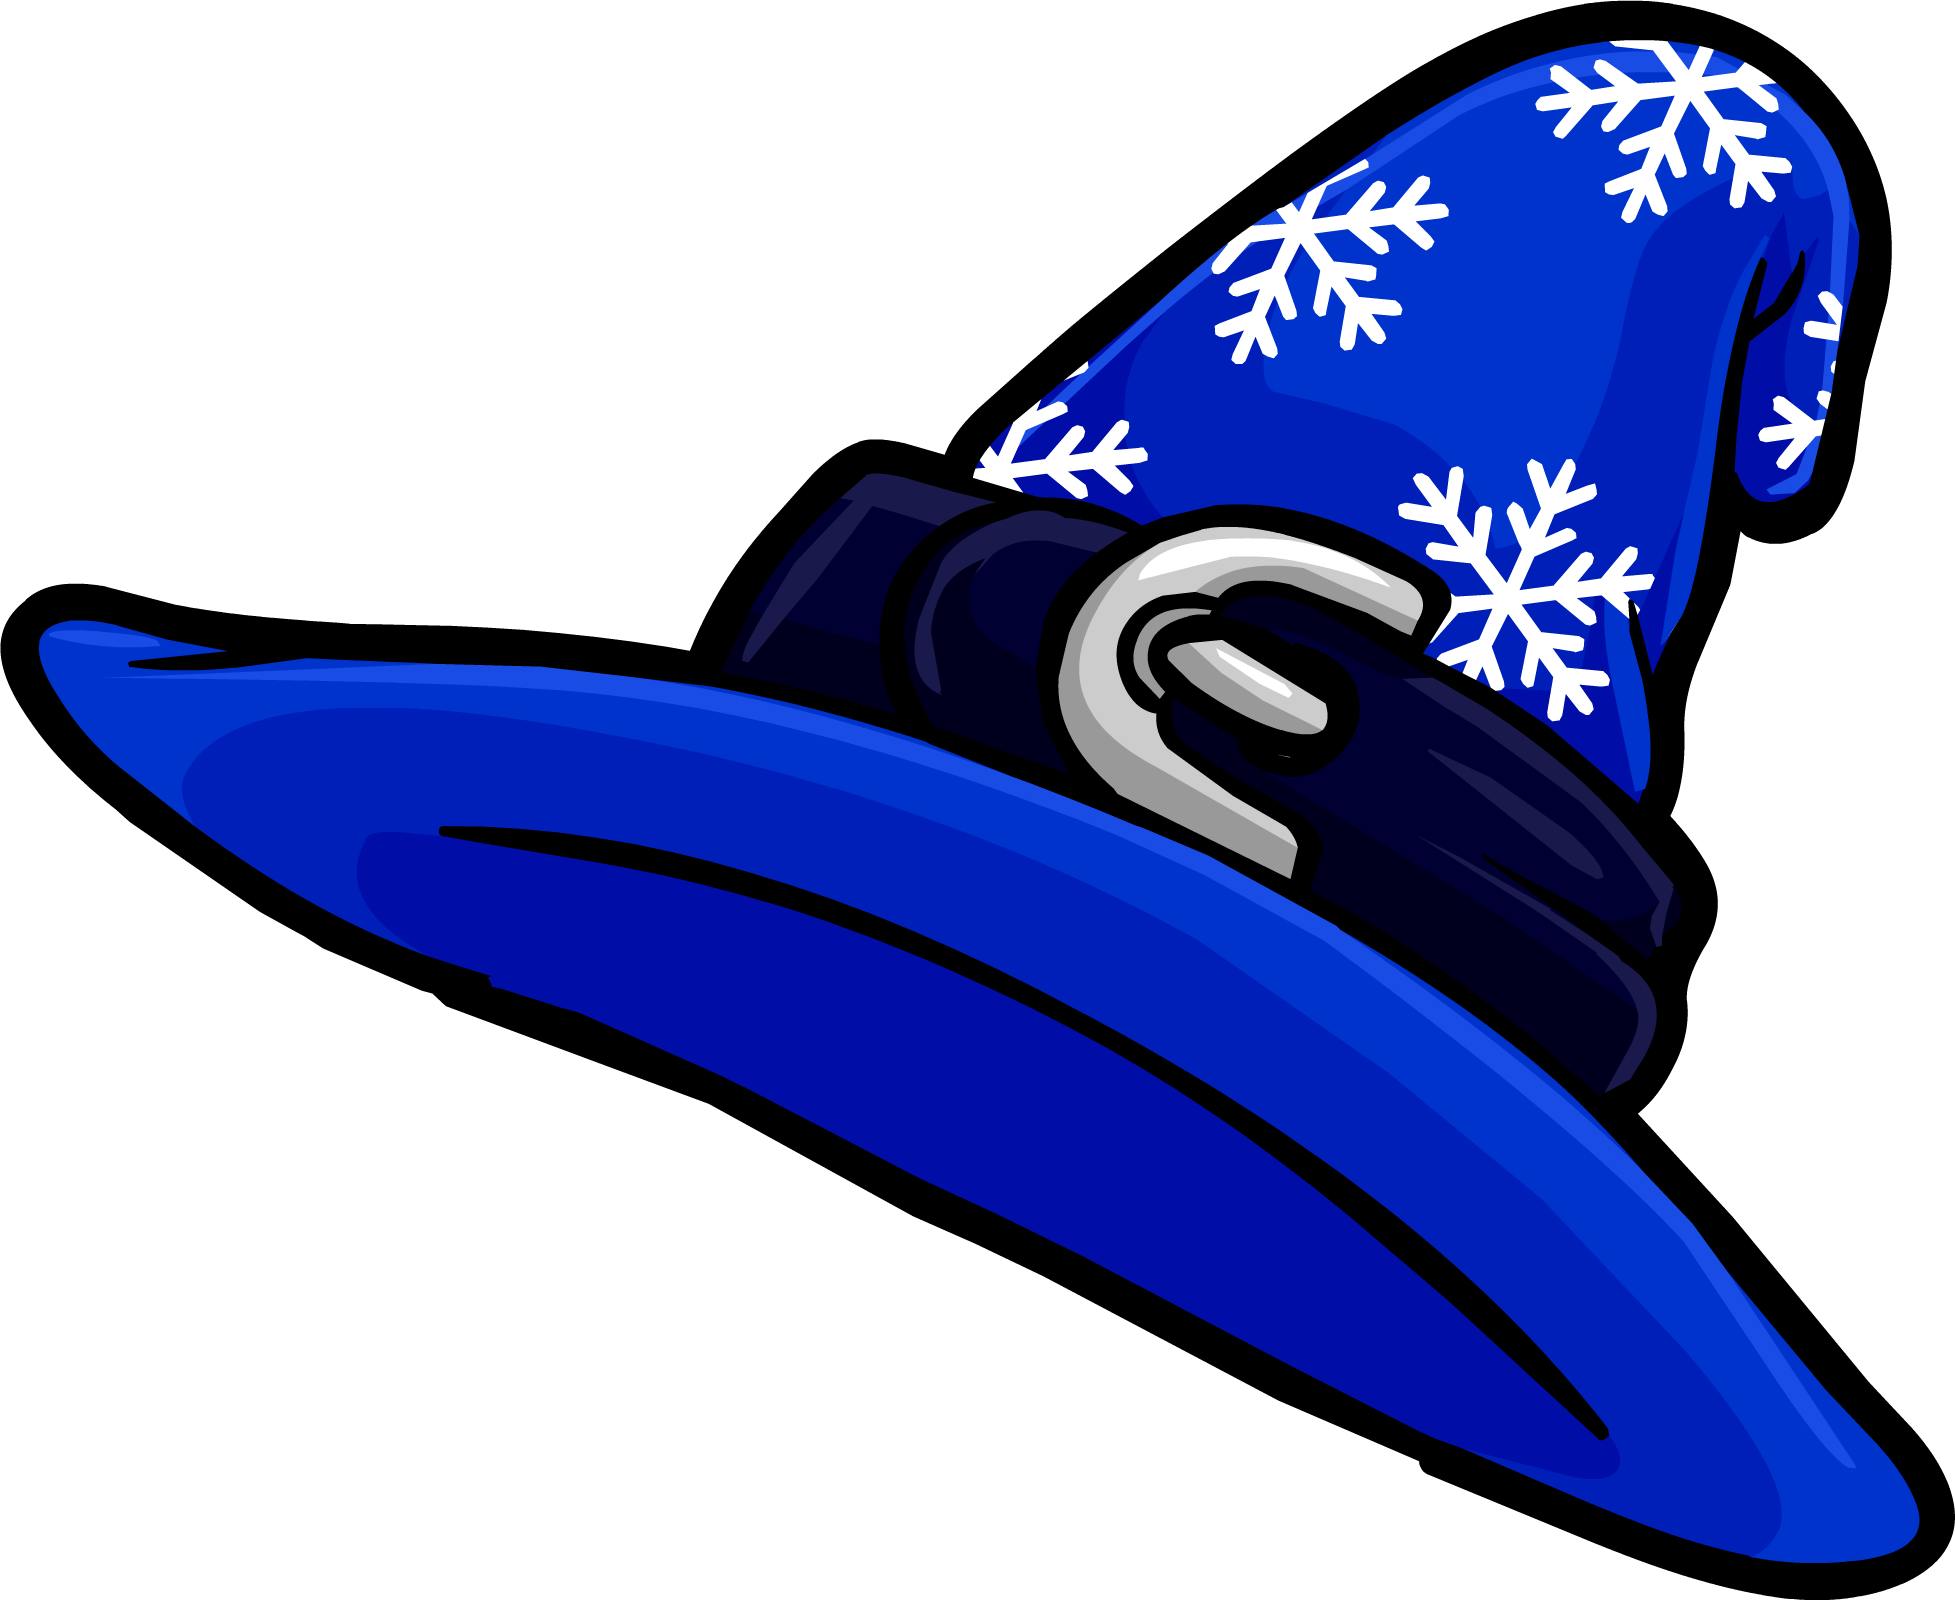 Blizzard clipart icon. Image blizzardwizardhat png club